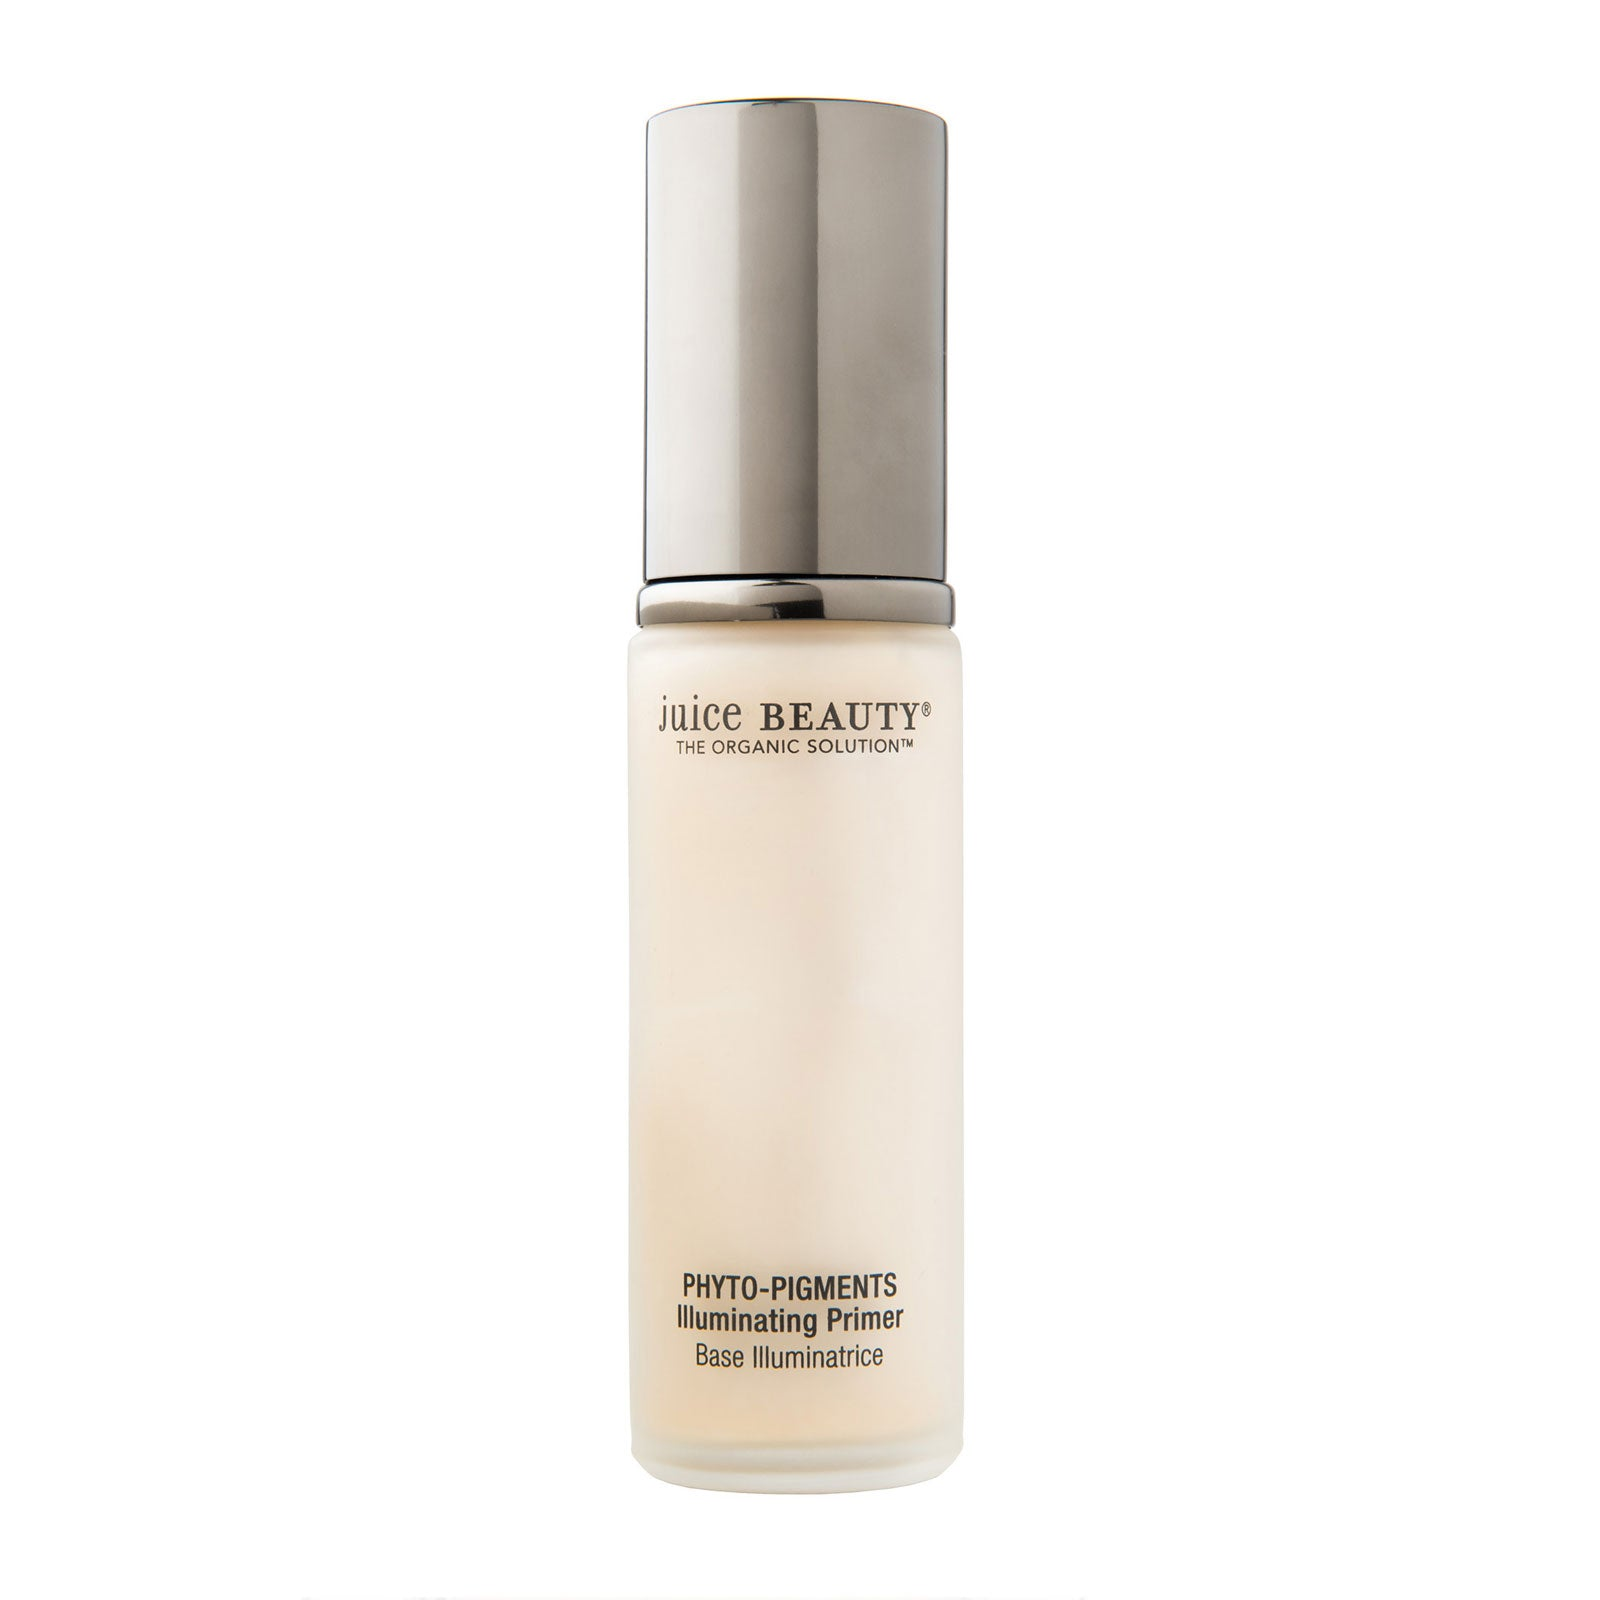 Juice Beauty PHYTO-PIGMENTS Illuminating Primer 30ml